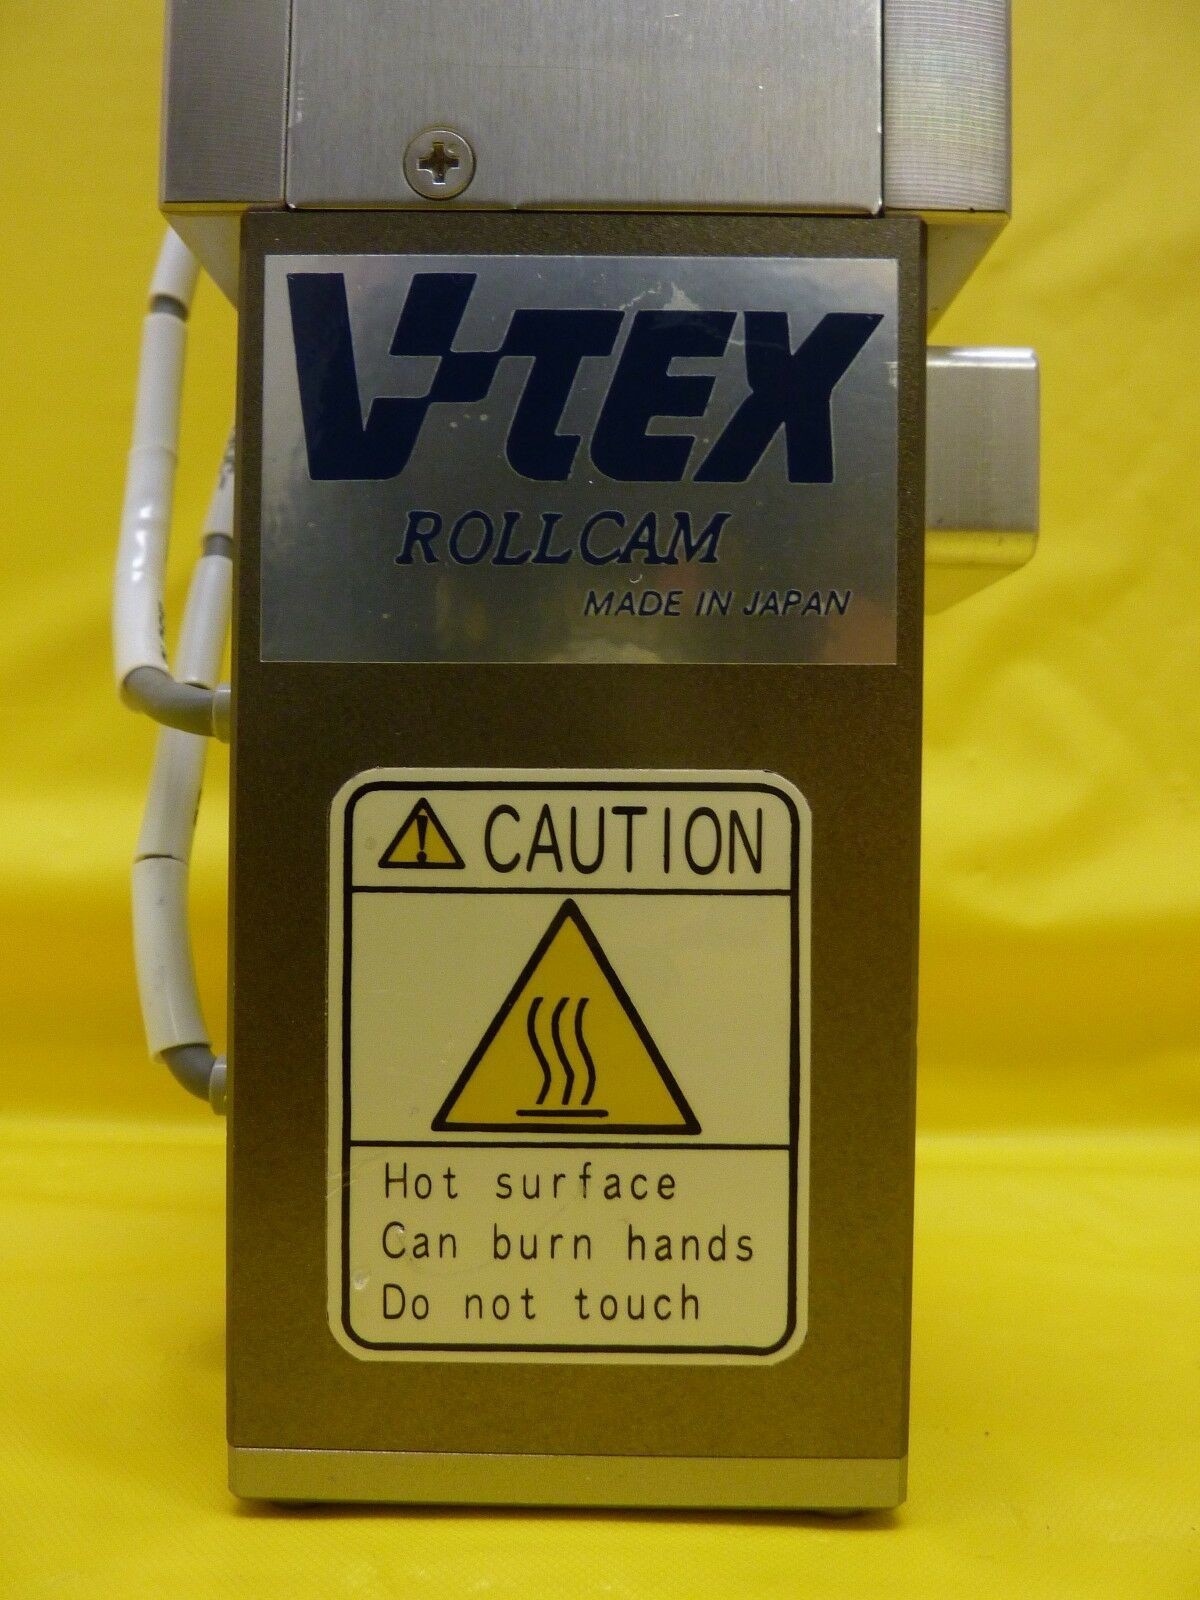 V-Tex IRF-03055-2-01 Pneumatic Slit Valve Rollcam NW50 Used Working